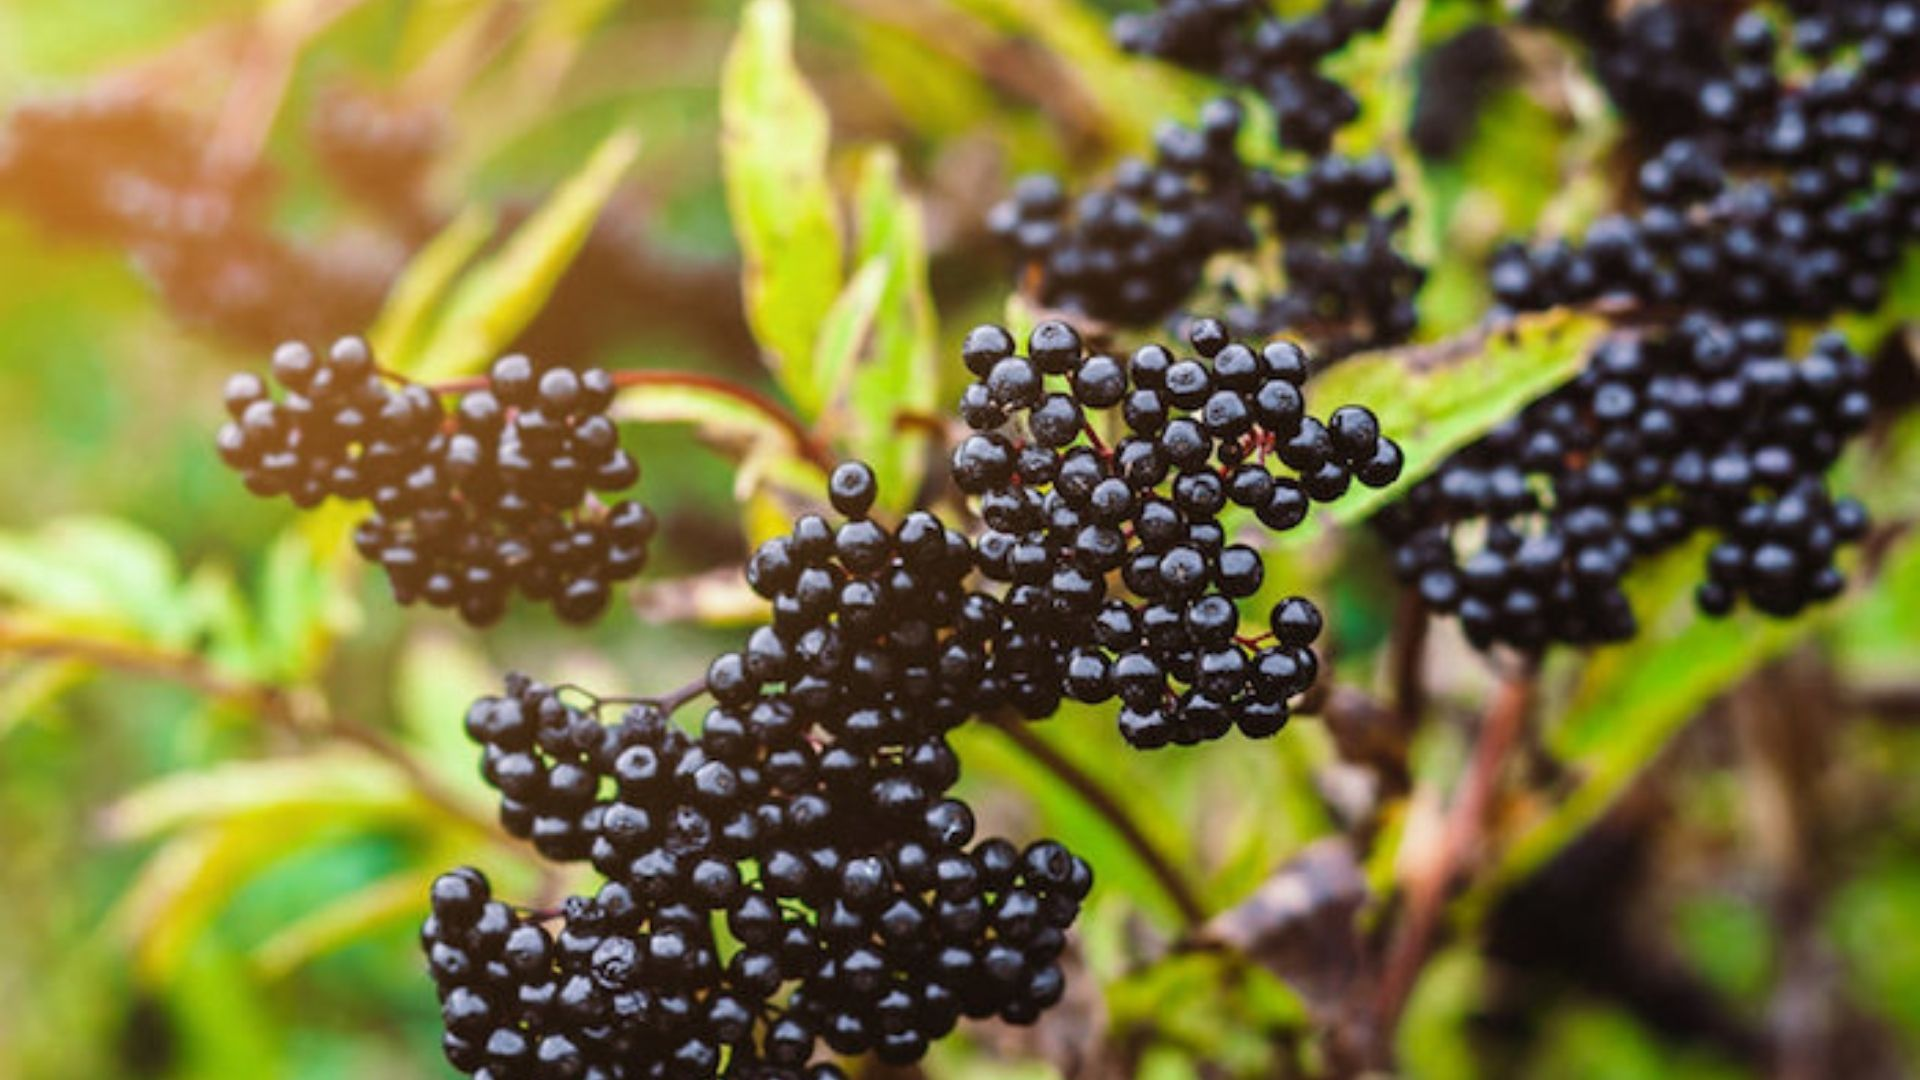 Studies showed that Elderberries block the flu virus from attaching to and entering human cells